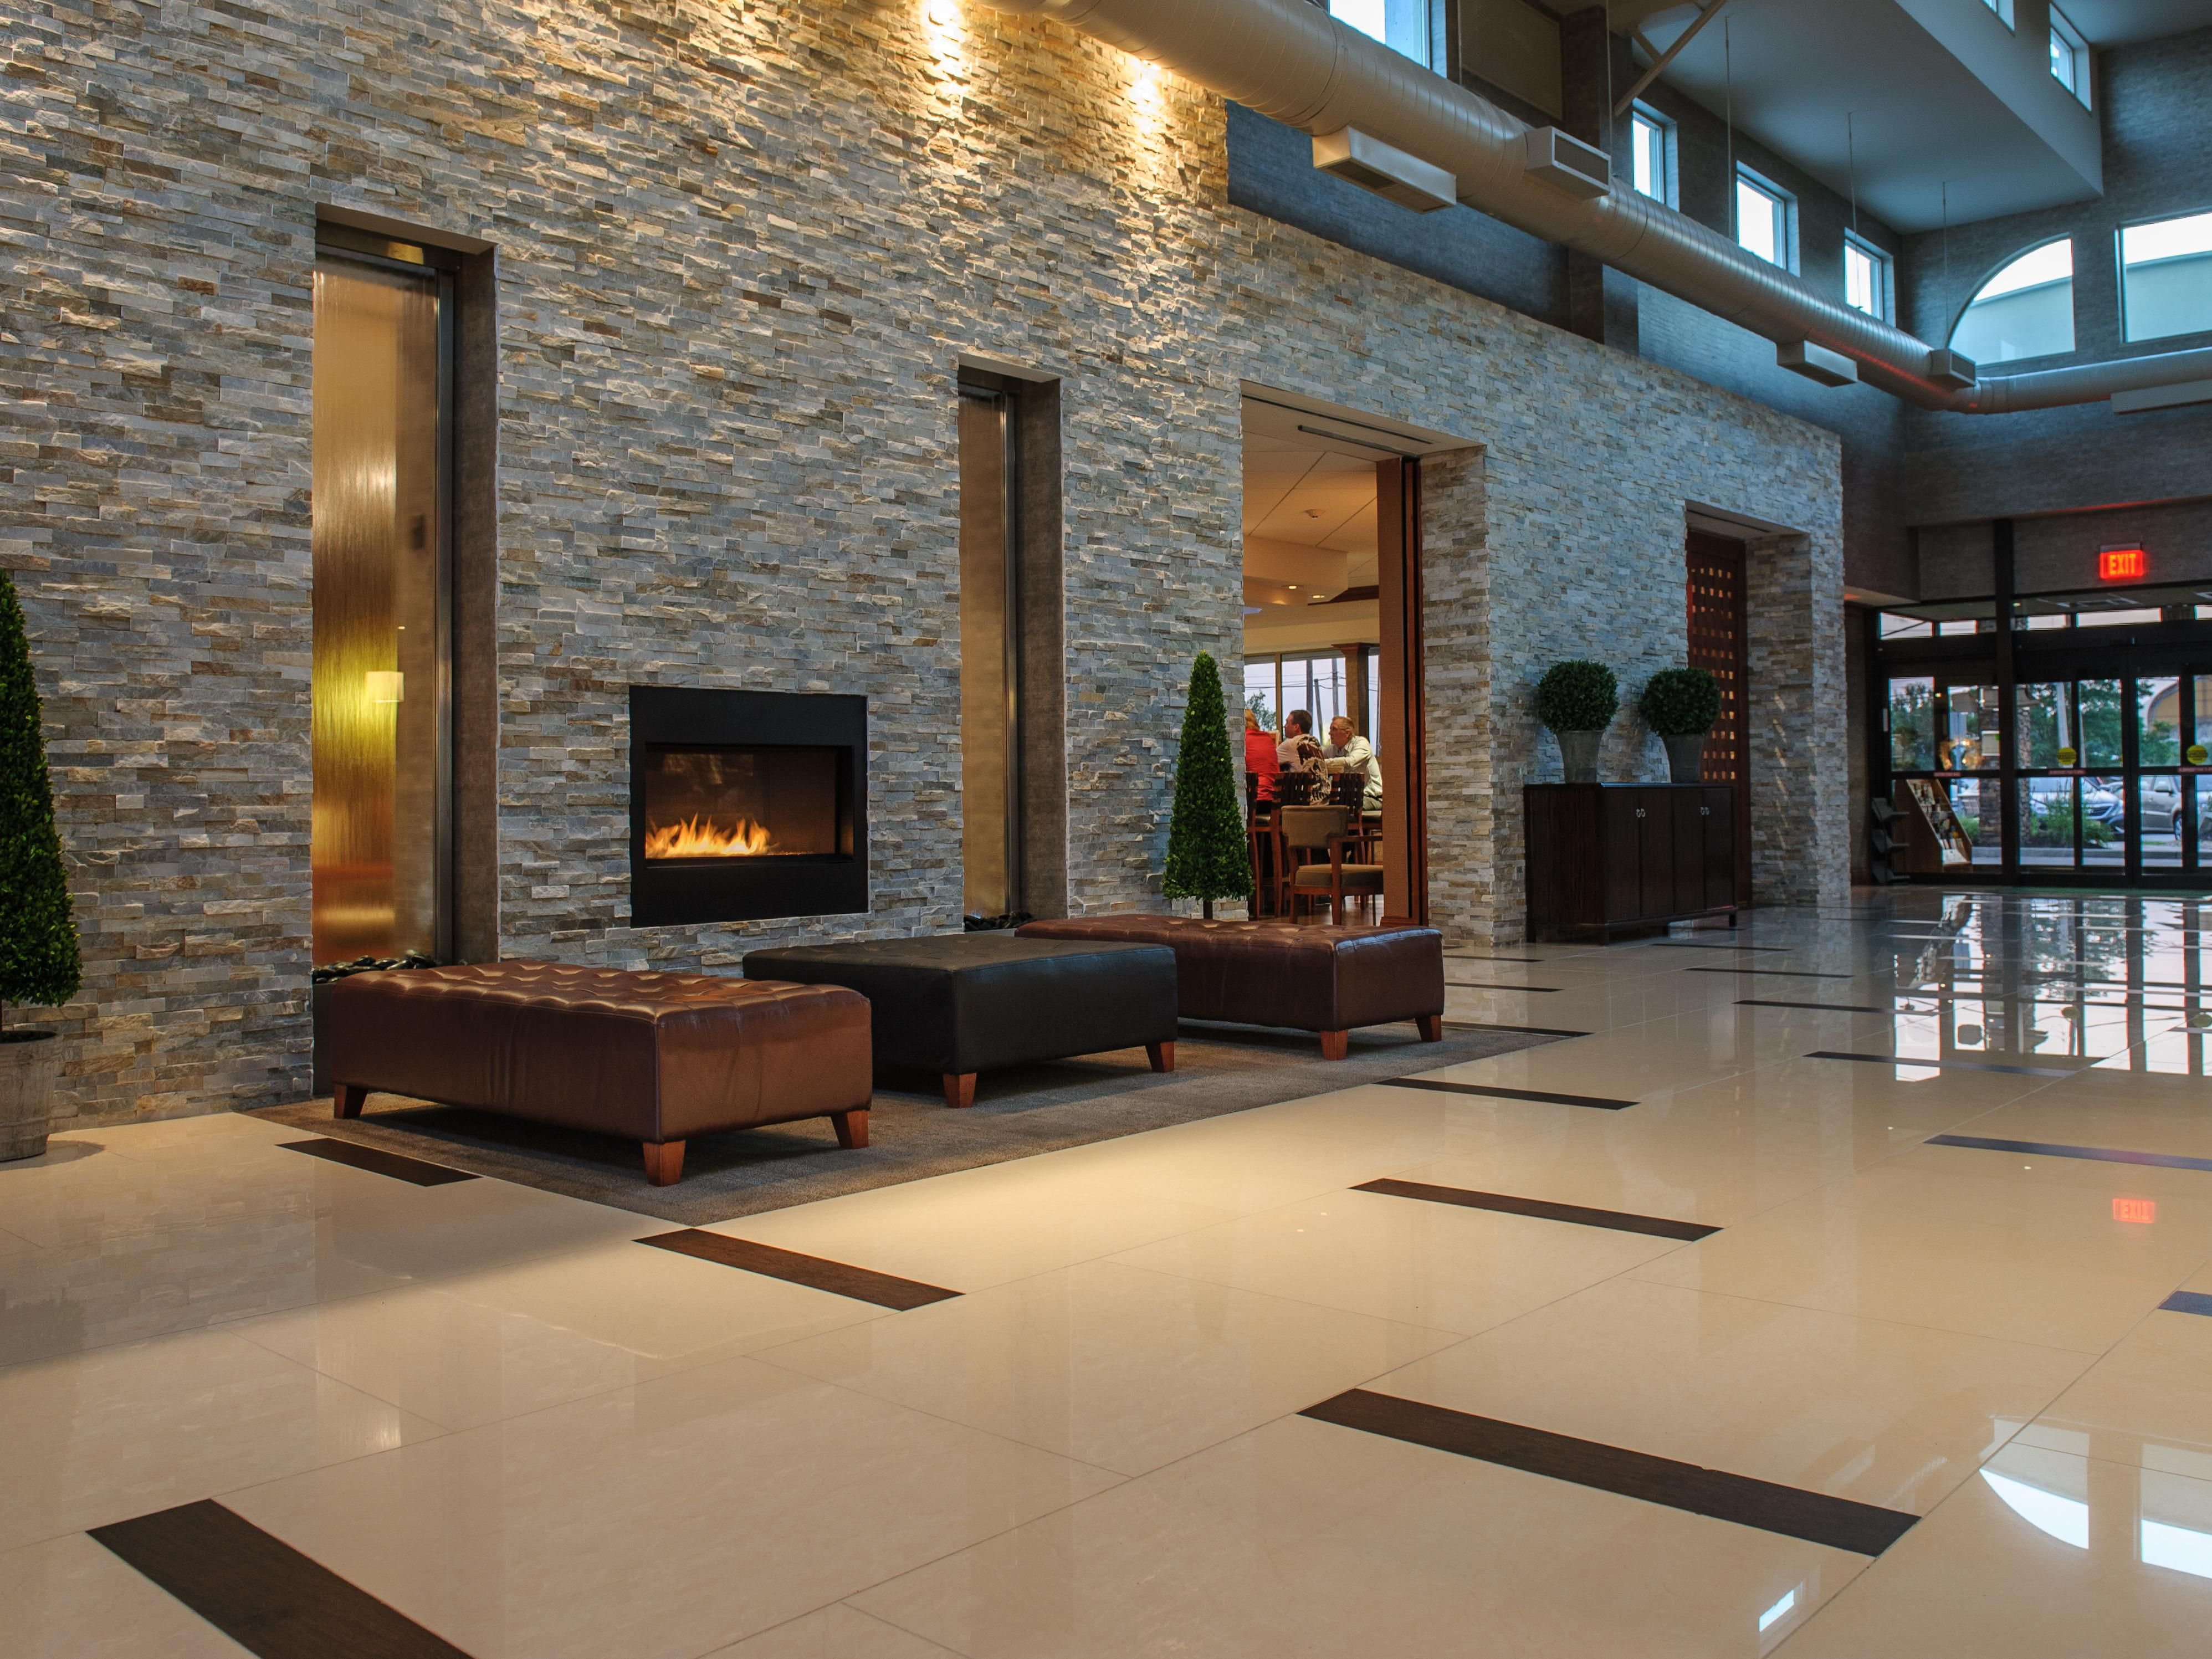 Warm & Inviting Hotel Lobby